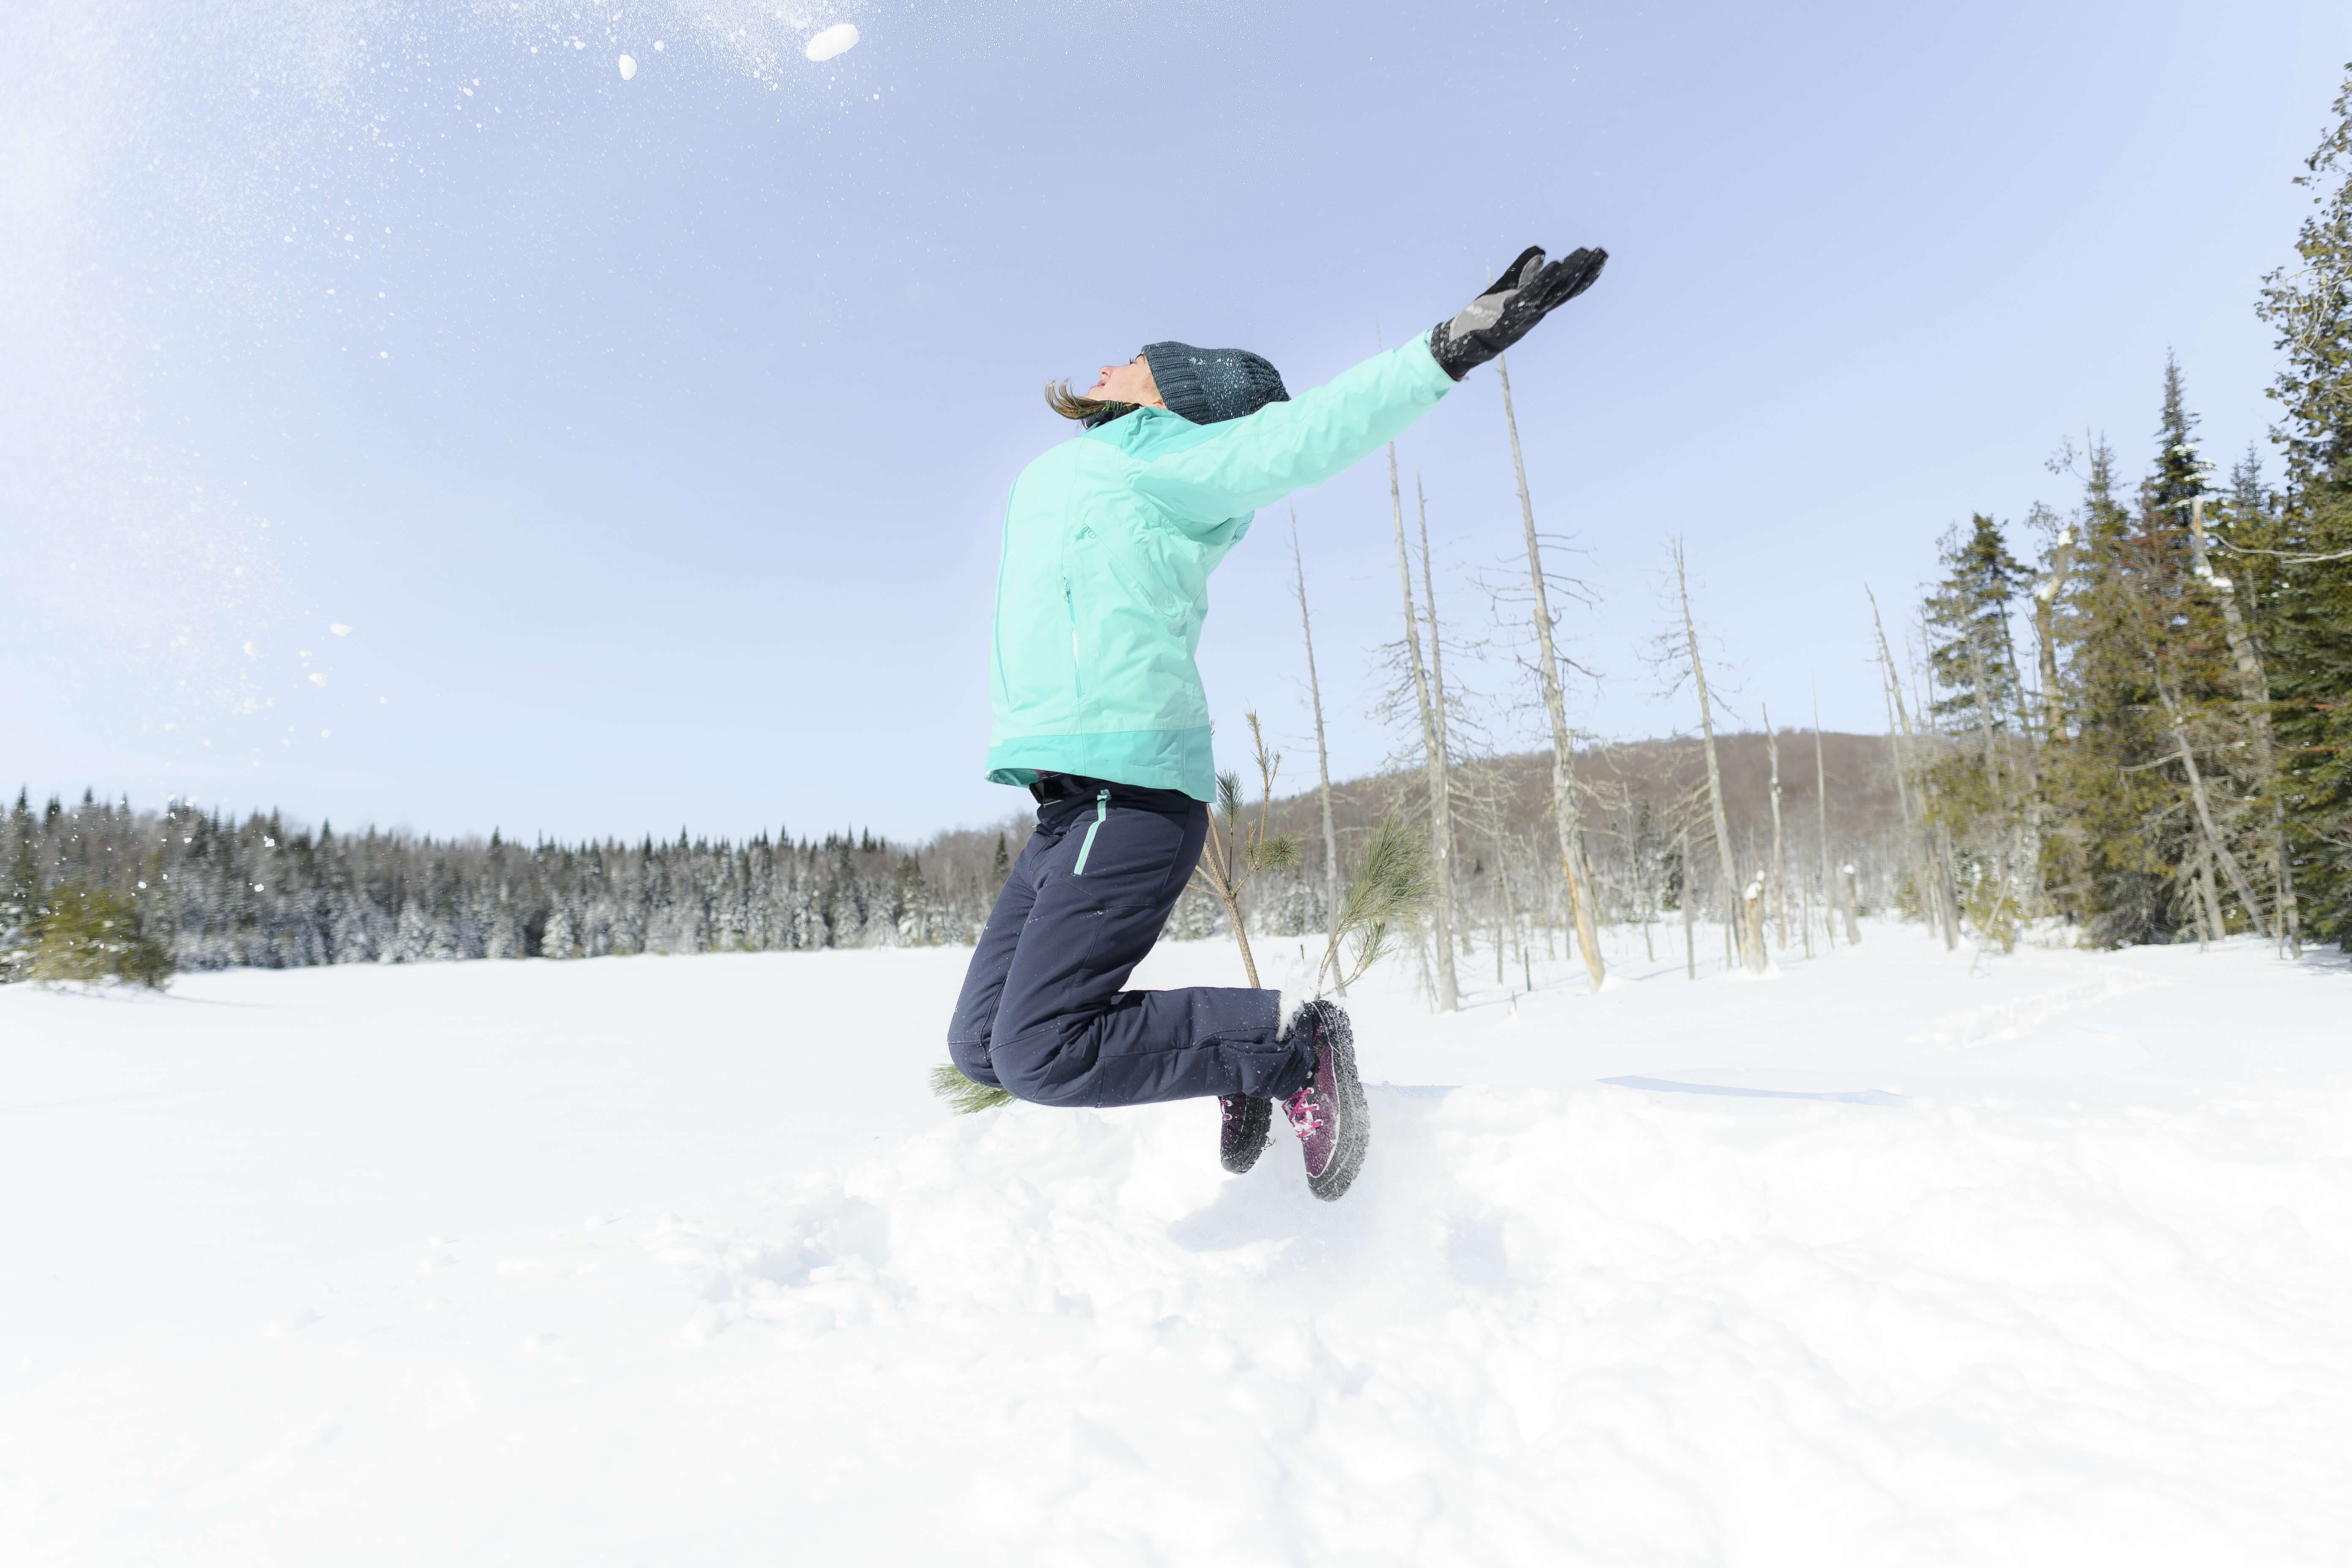 Hiking on the snow: an outfit for everyone